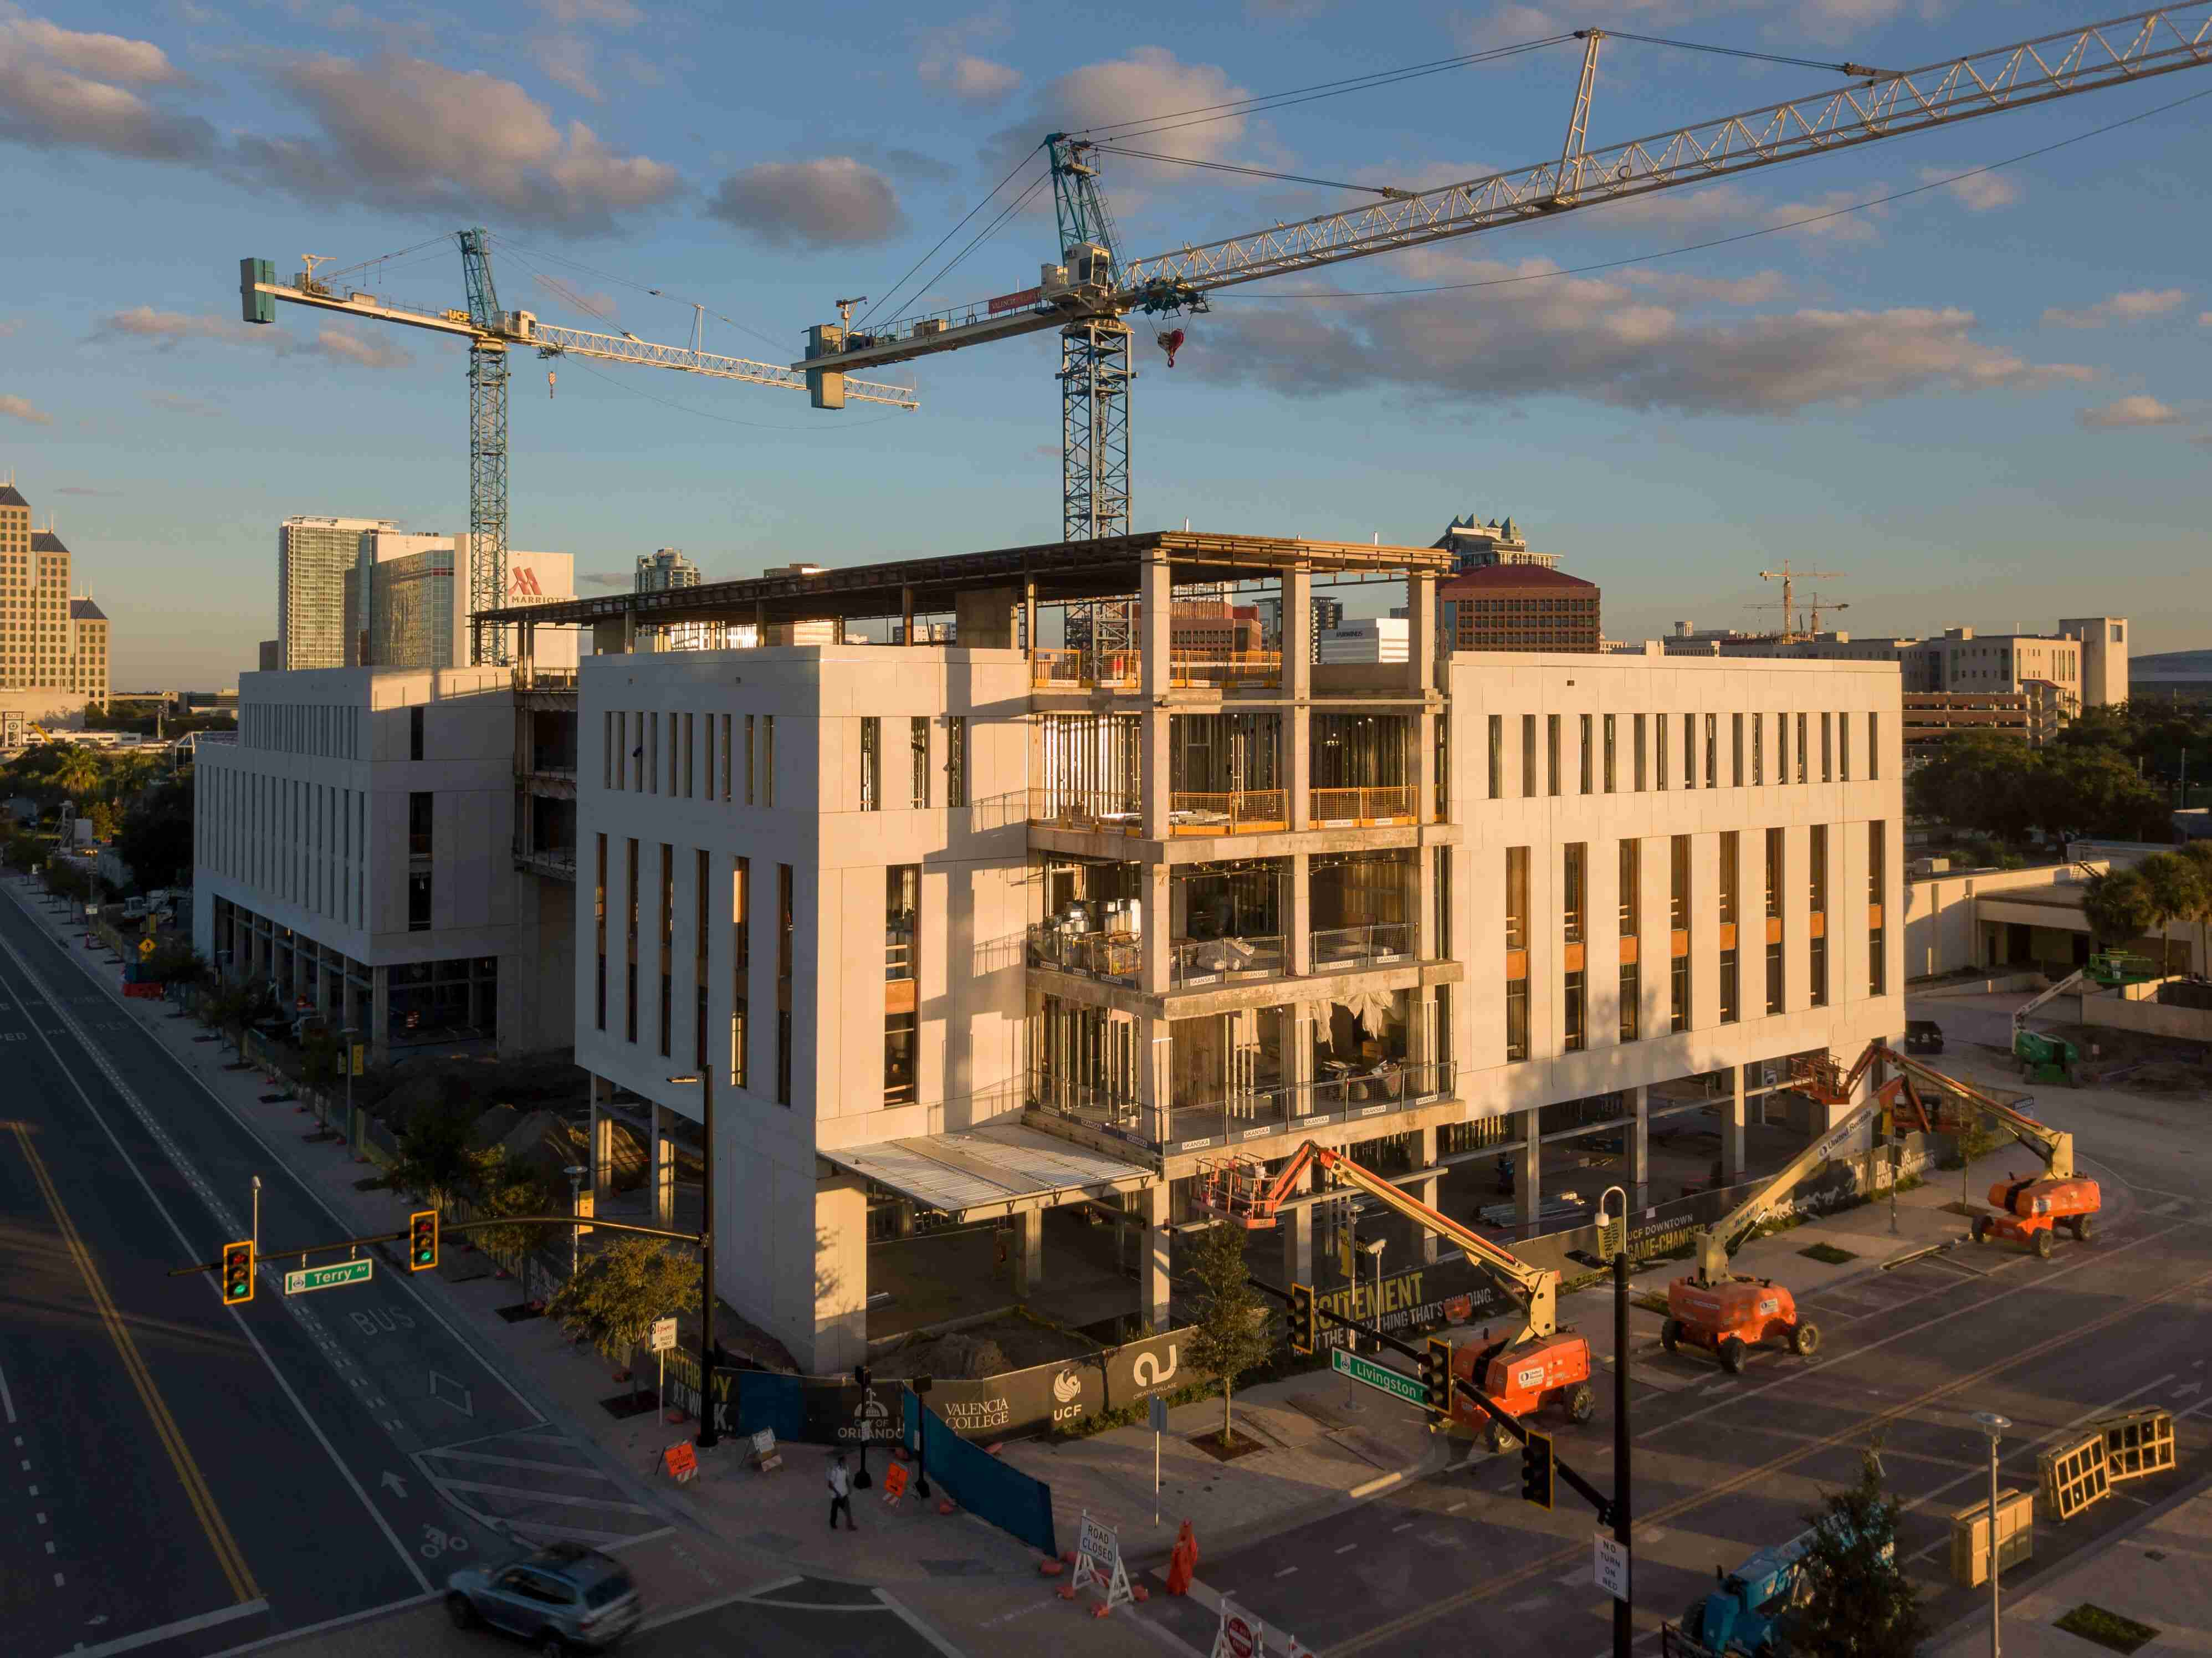 The Downtown Campus for the University of Central Florida and Valencia College is under construction.